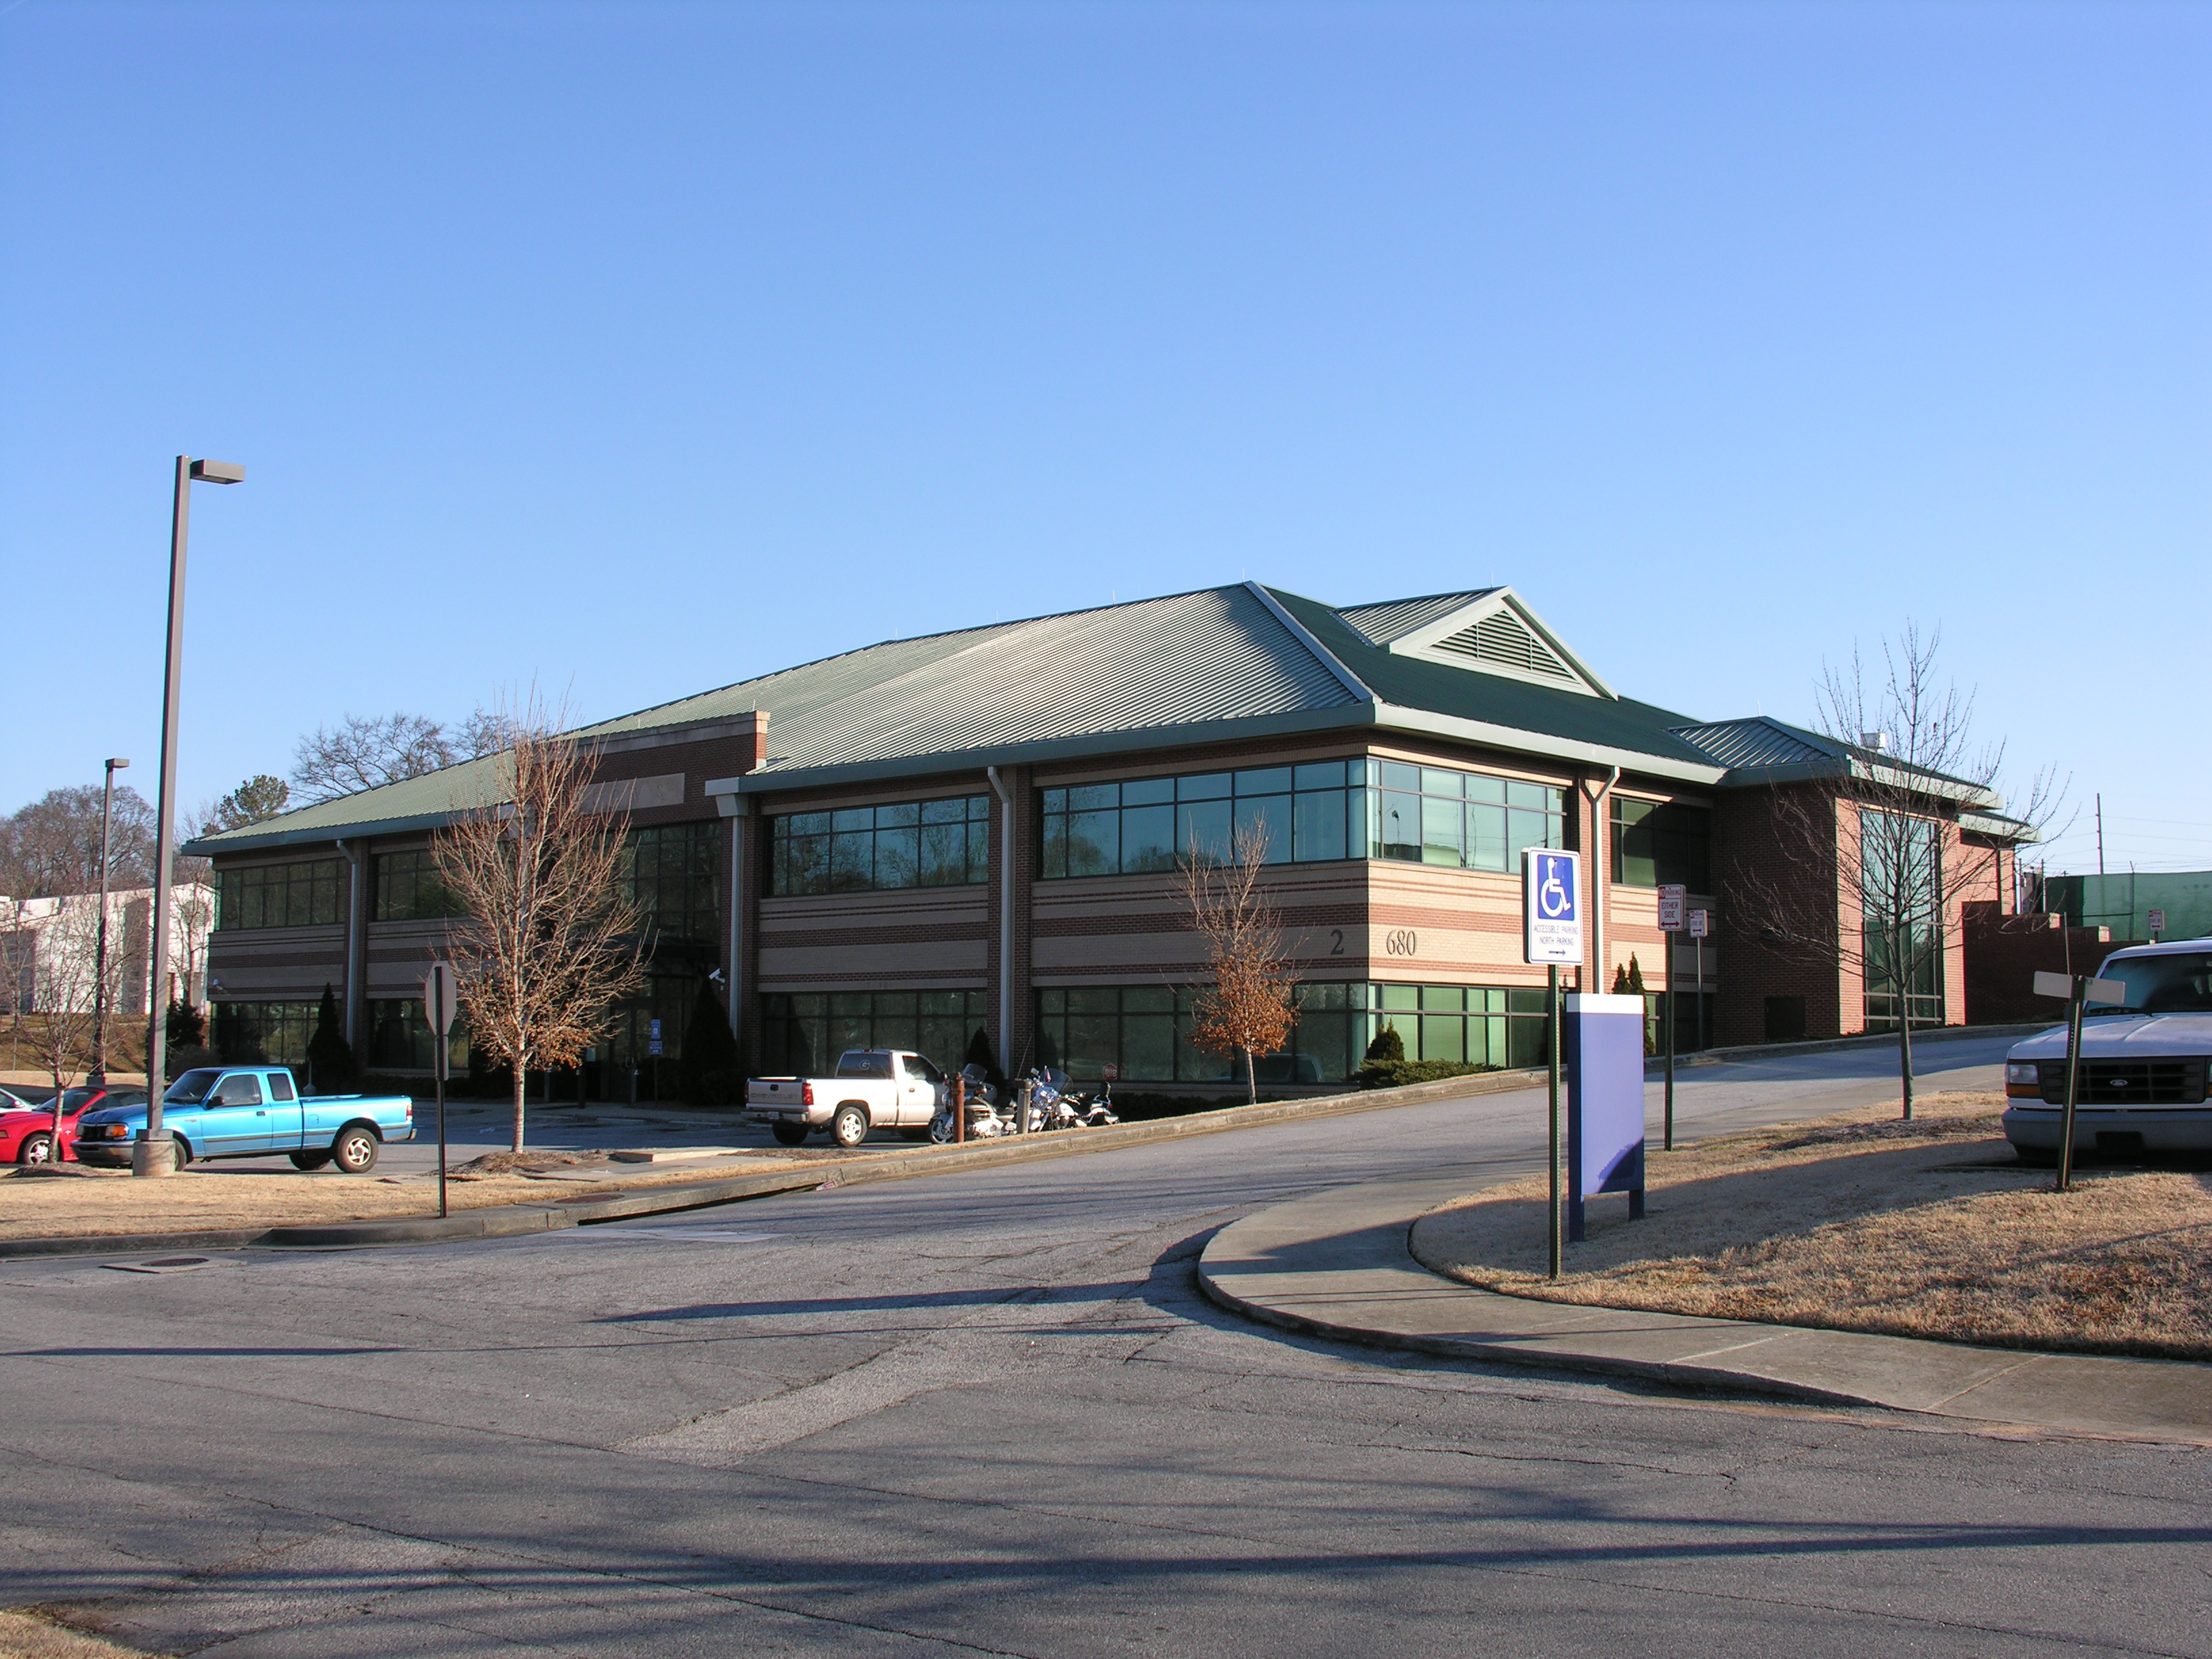 Cobb County Water Authority Office Building, Marietta, Georgia - US175LS -Hemlock Green